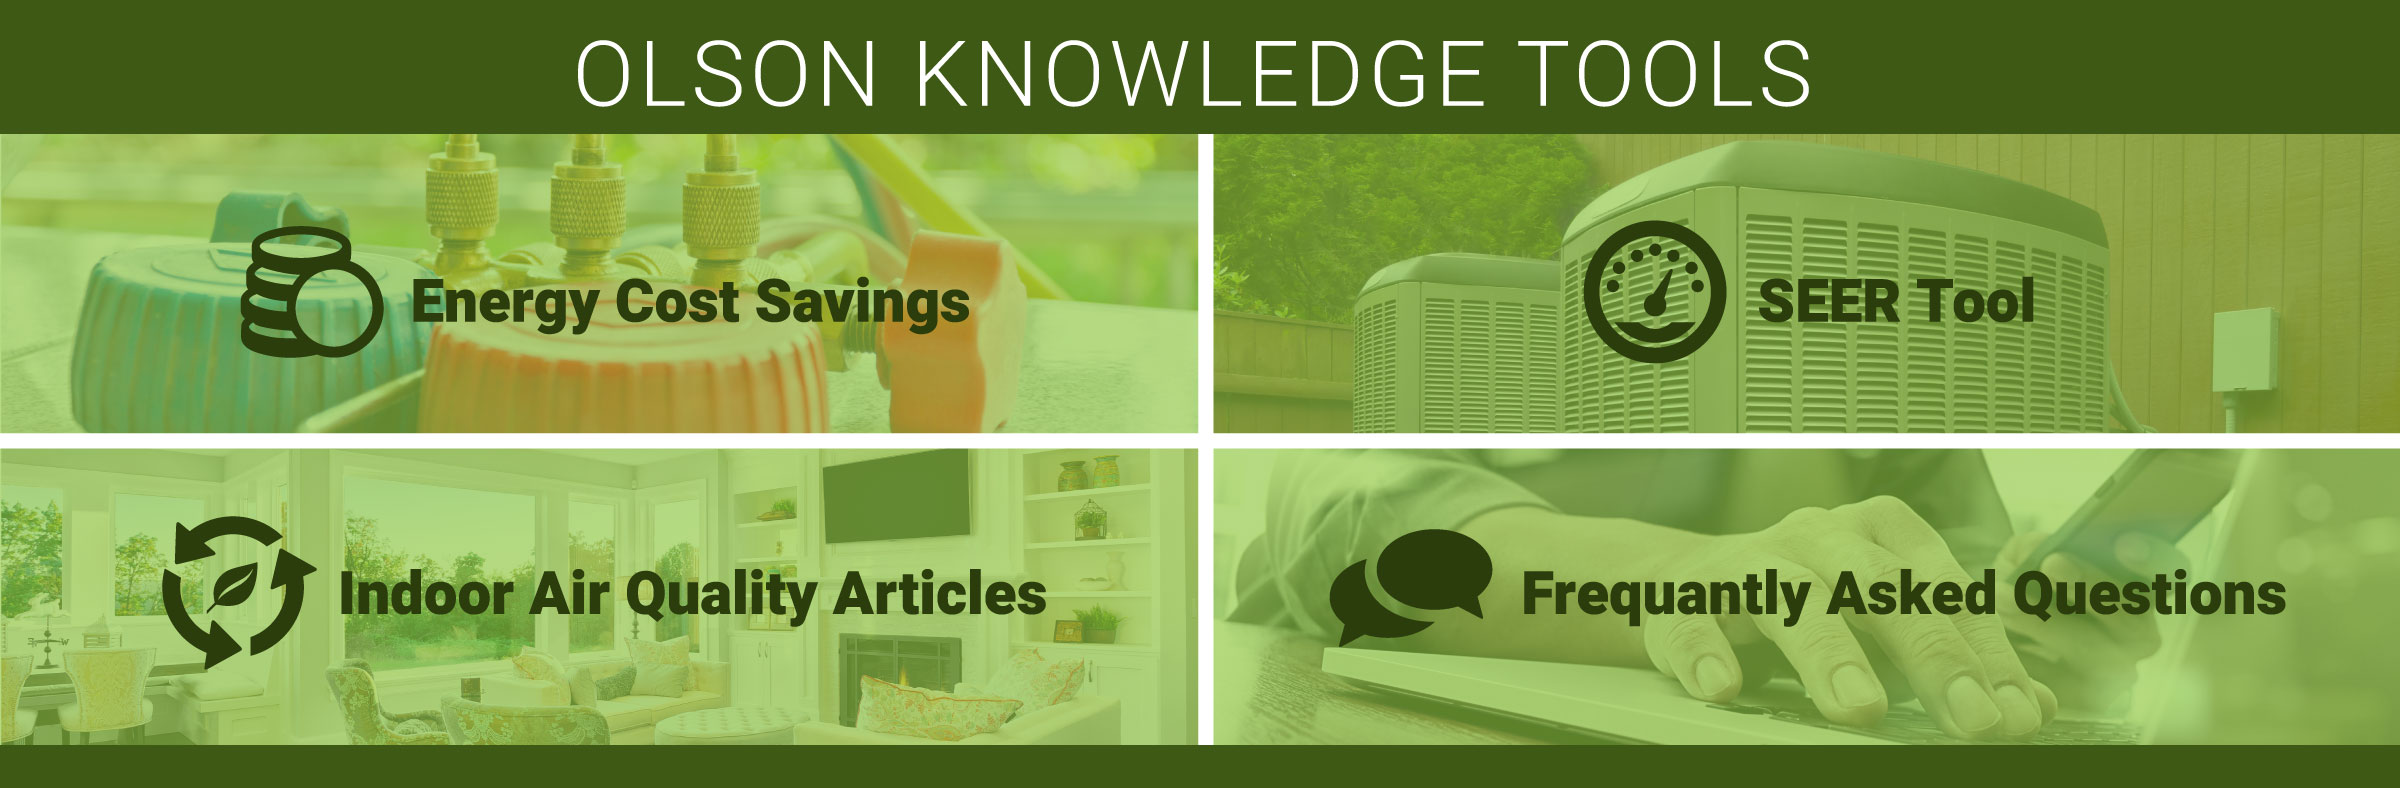 Explore the Olson Knowledge Tools!